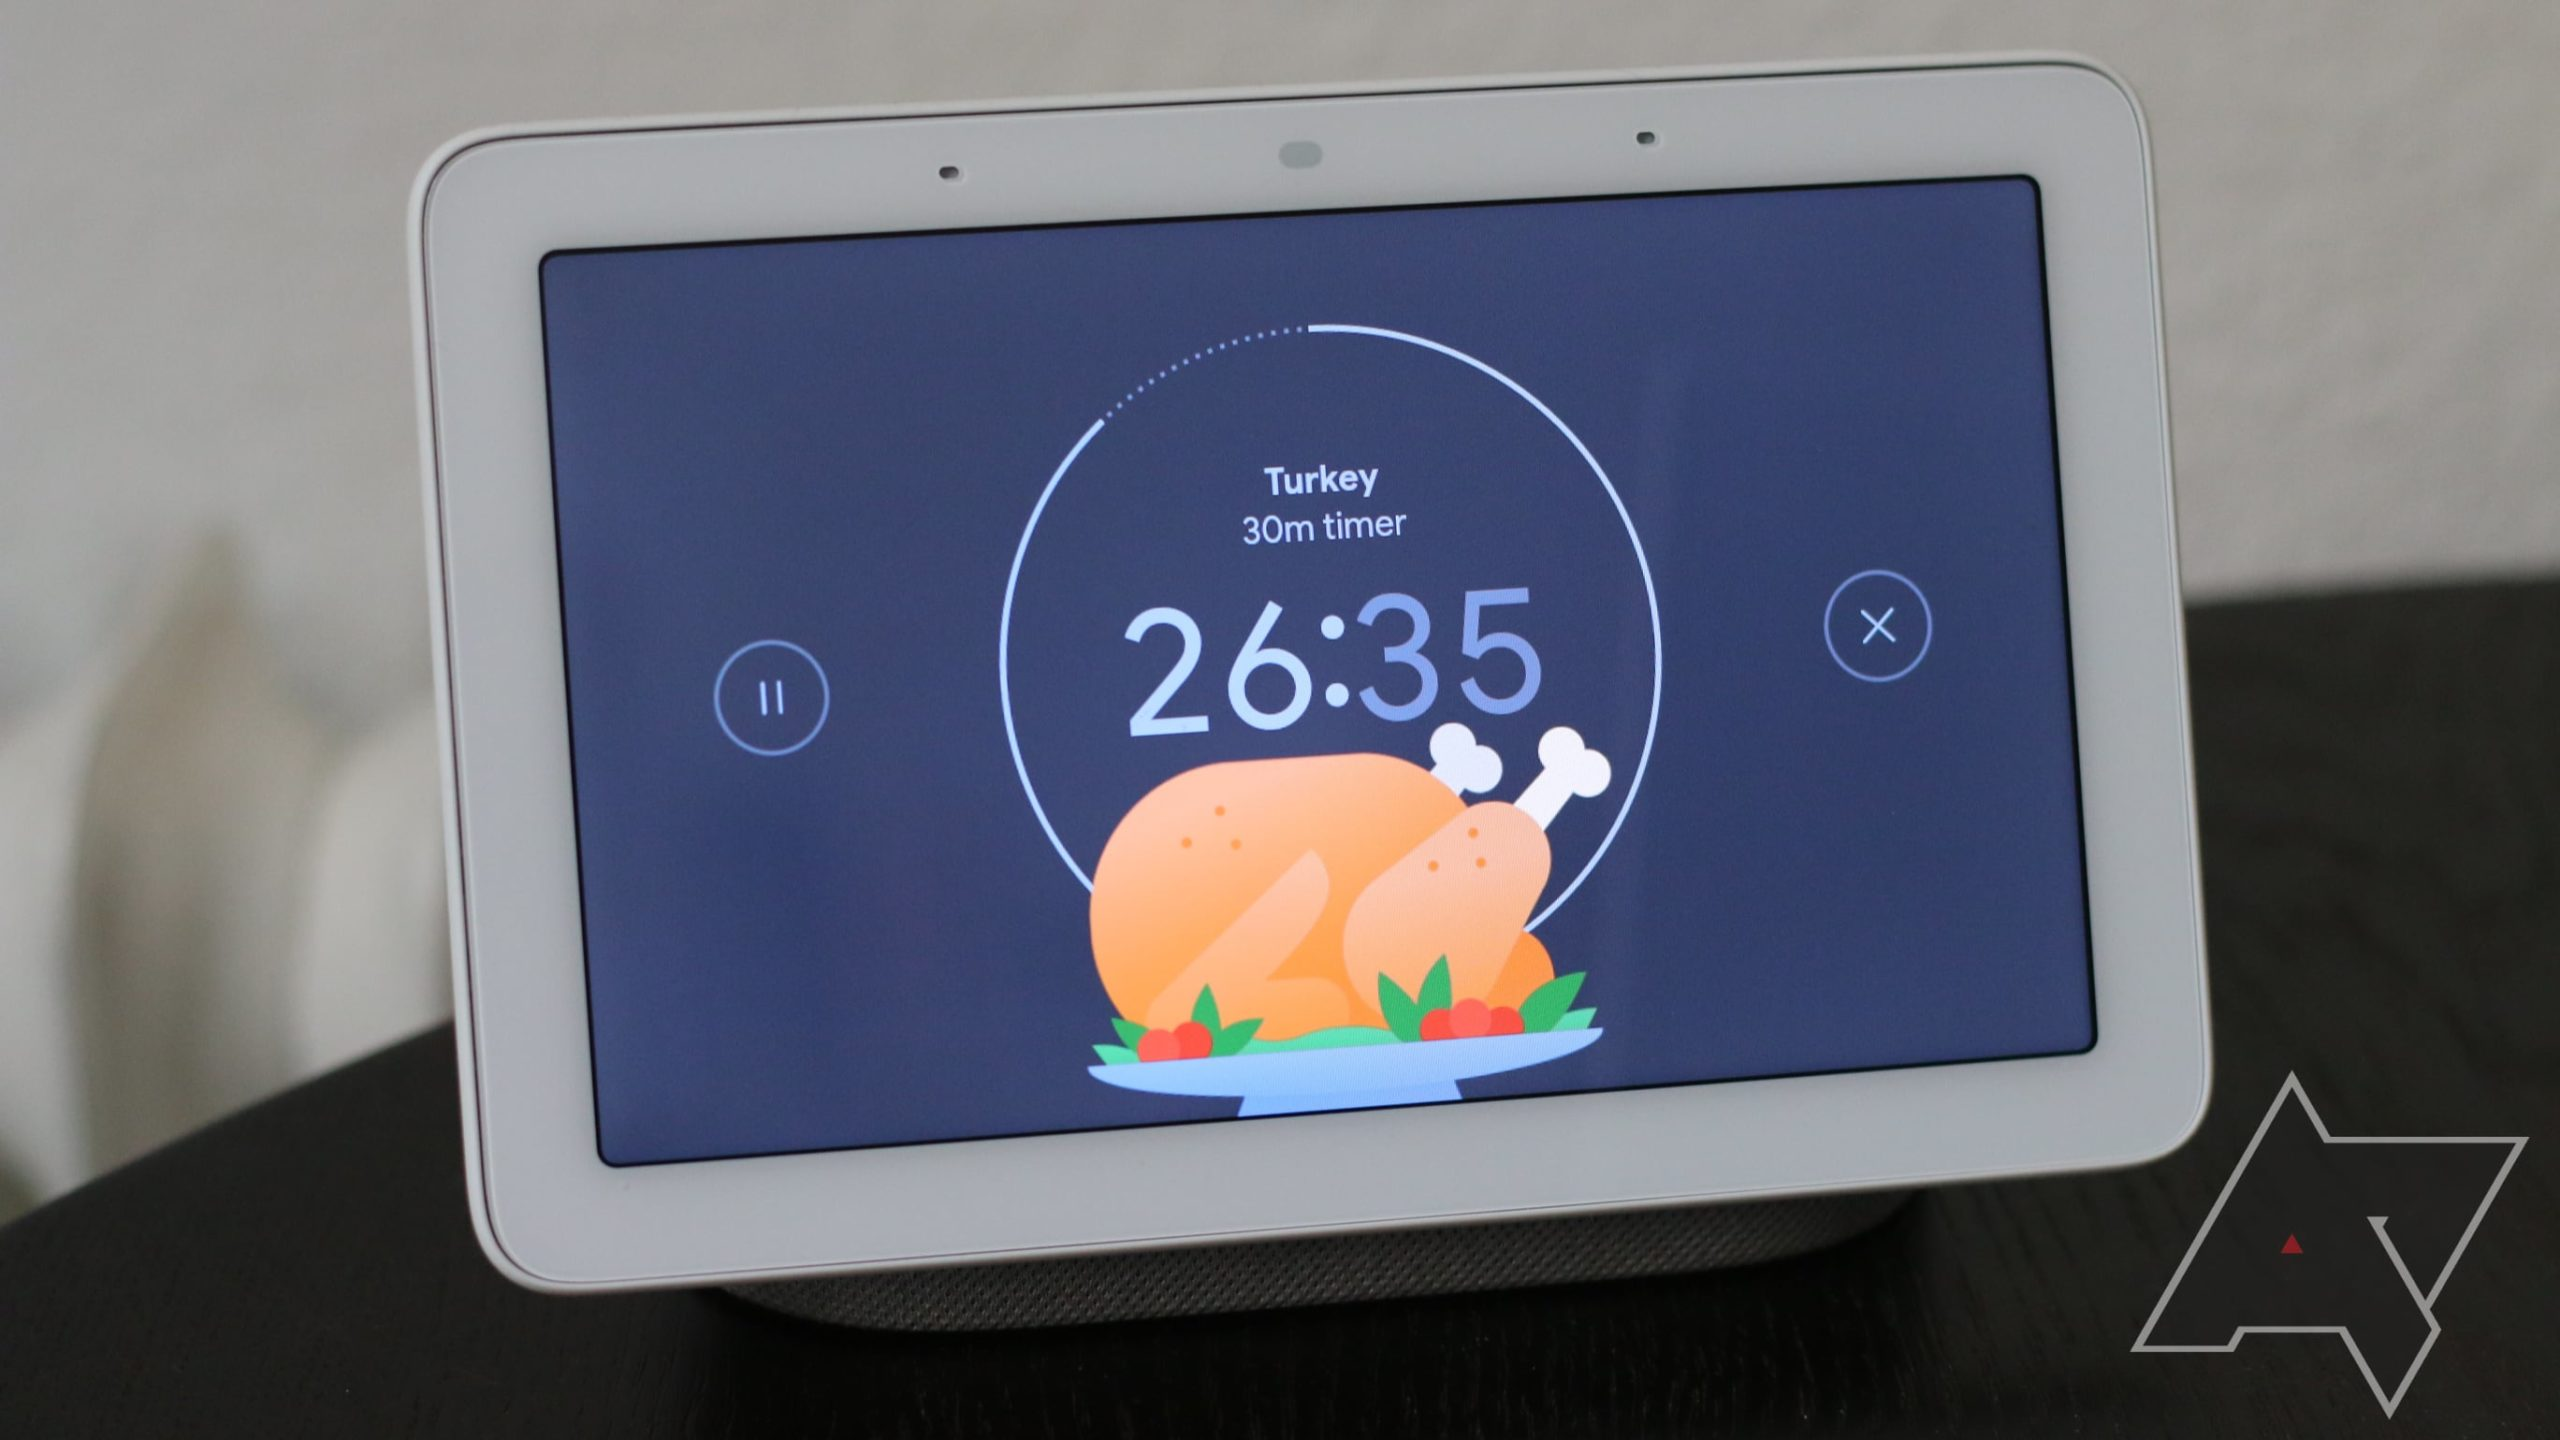 Google is going all-in on turkey fun this Thanksgiving - Android Police